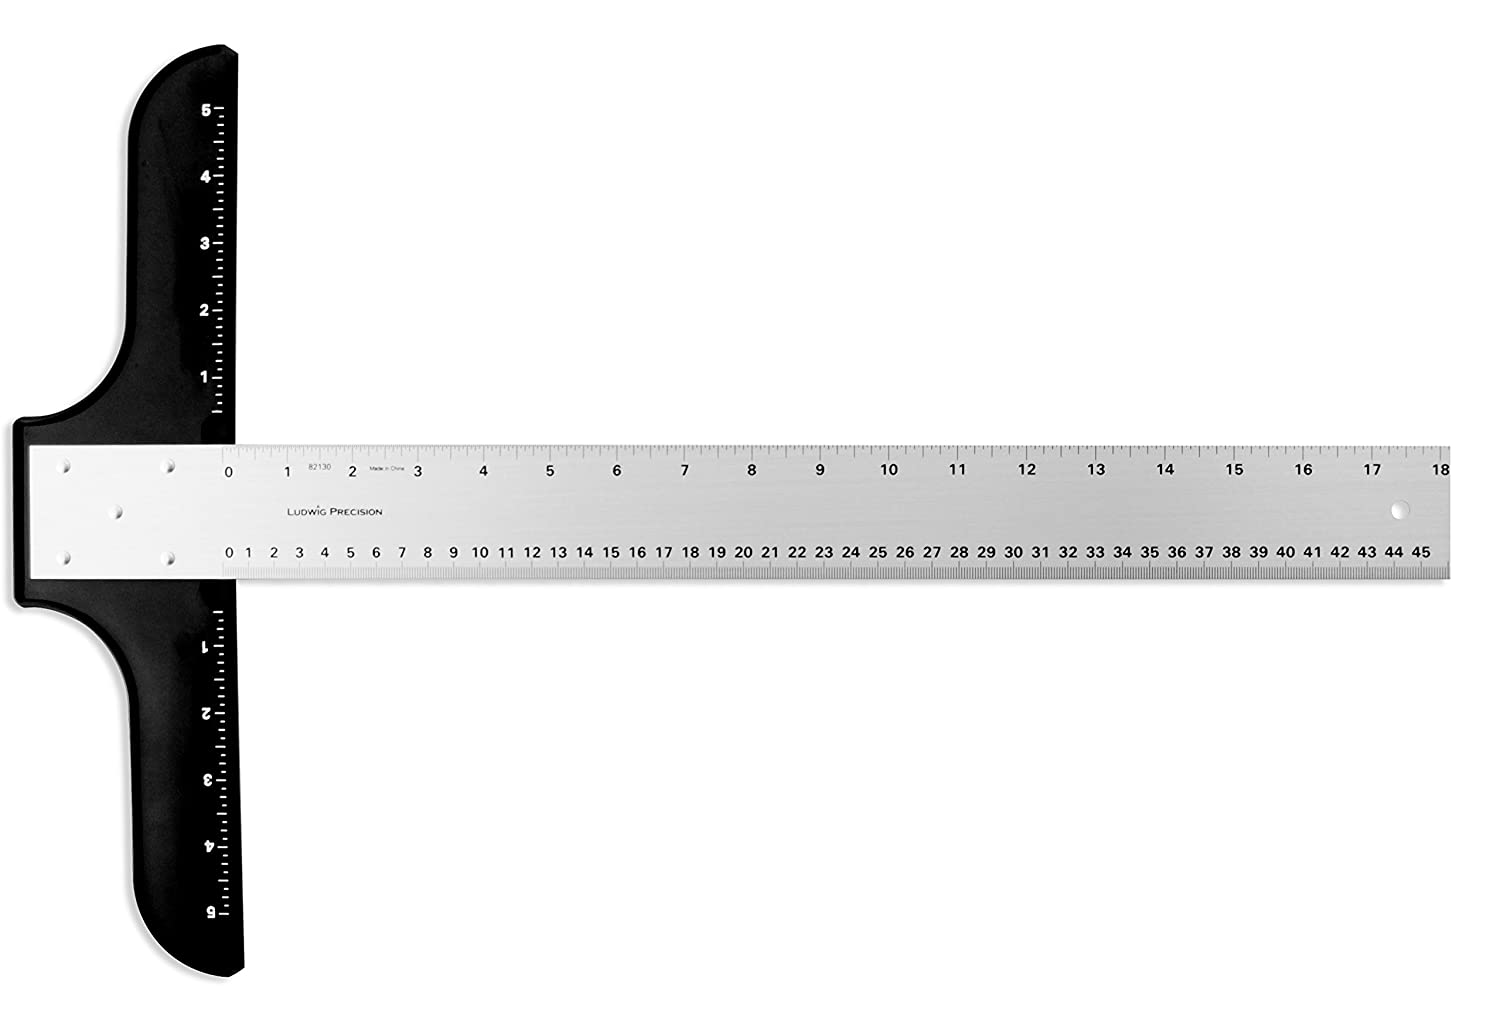 82012 Ludwig Precision 12 Standard T-Square for Art Framing and Drafting